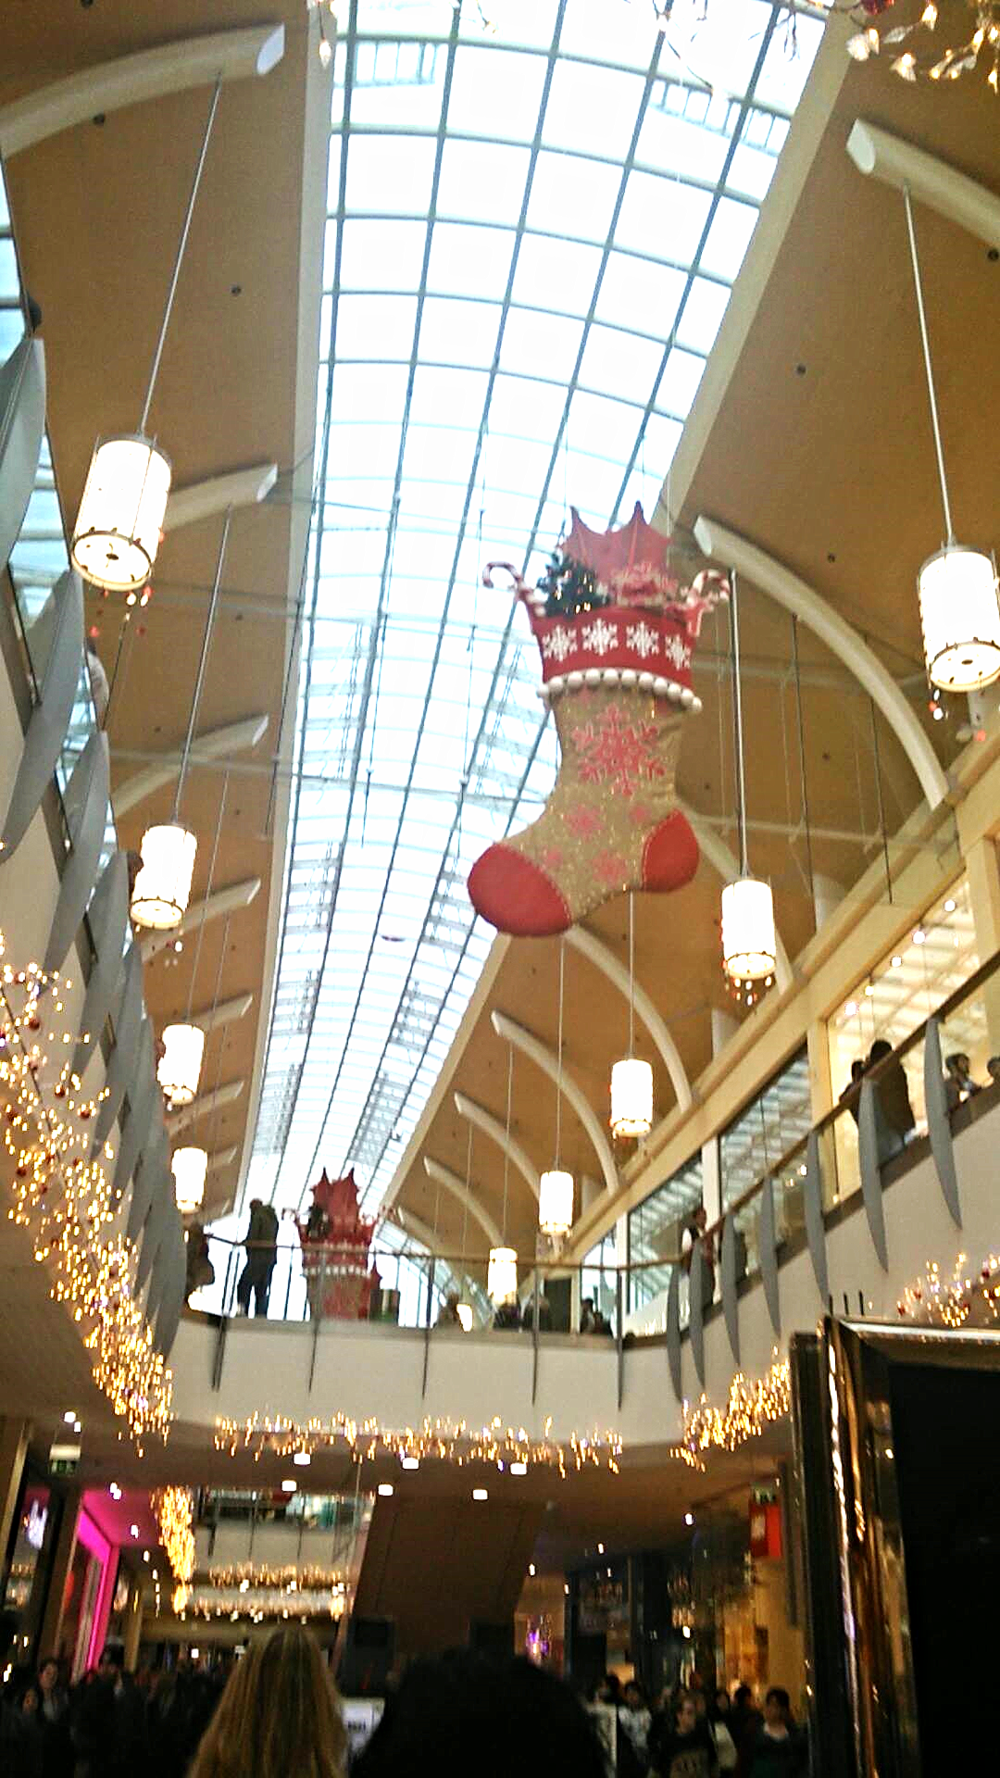 Superpeach Wales blog St David's Shopping Centre Christmas decorations